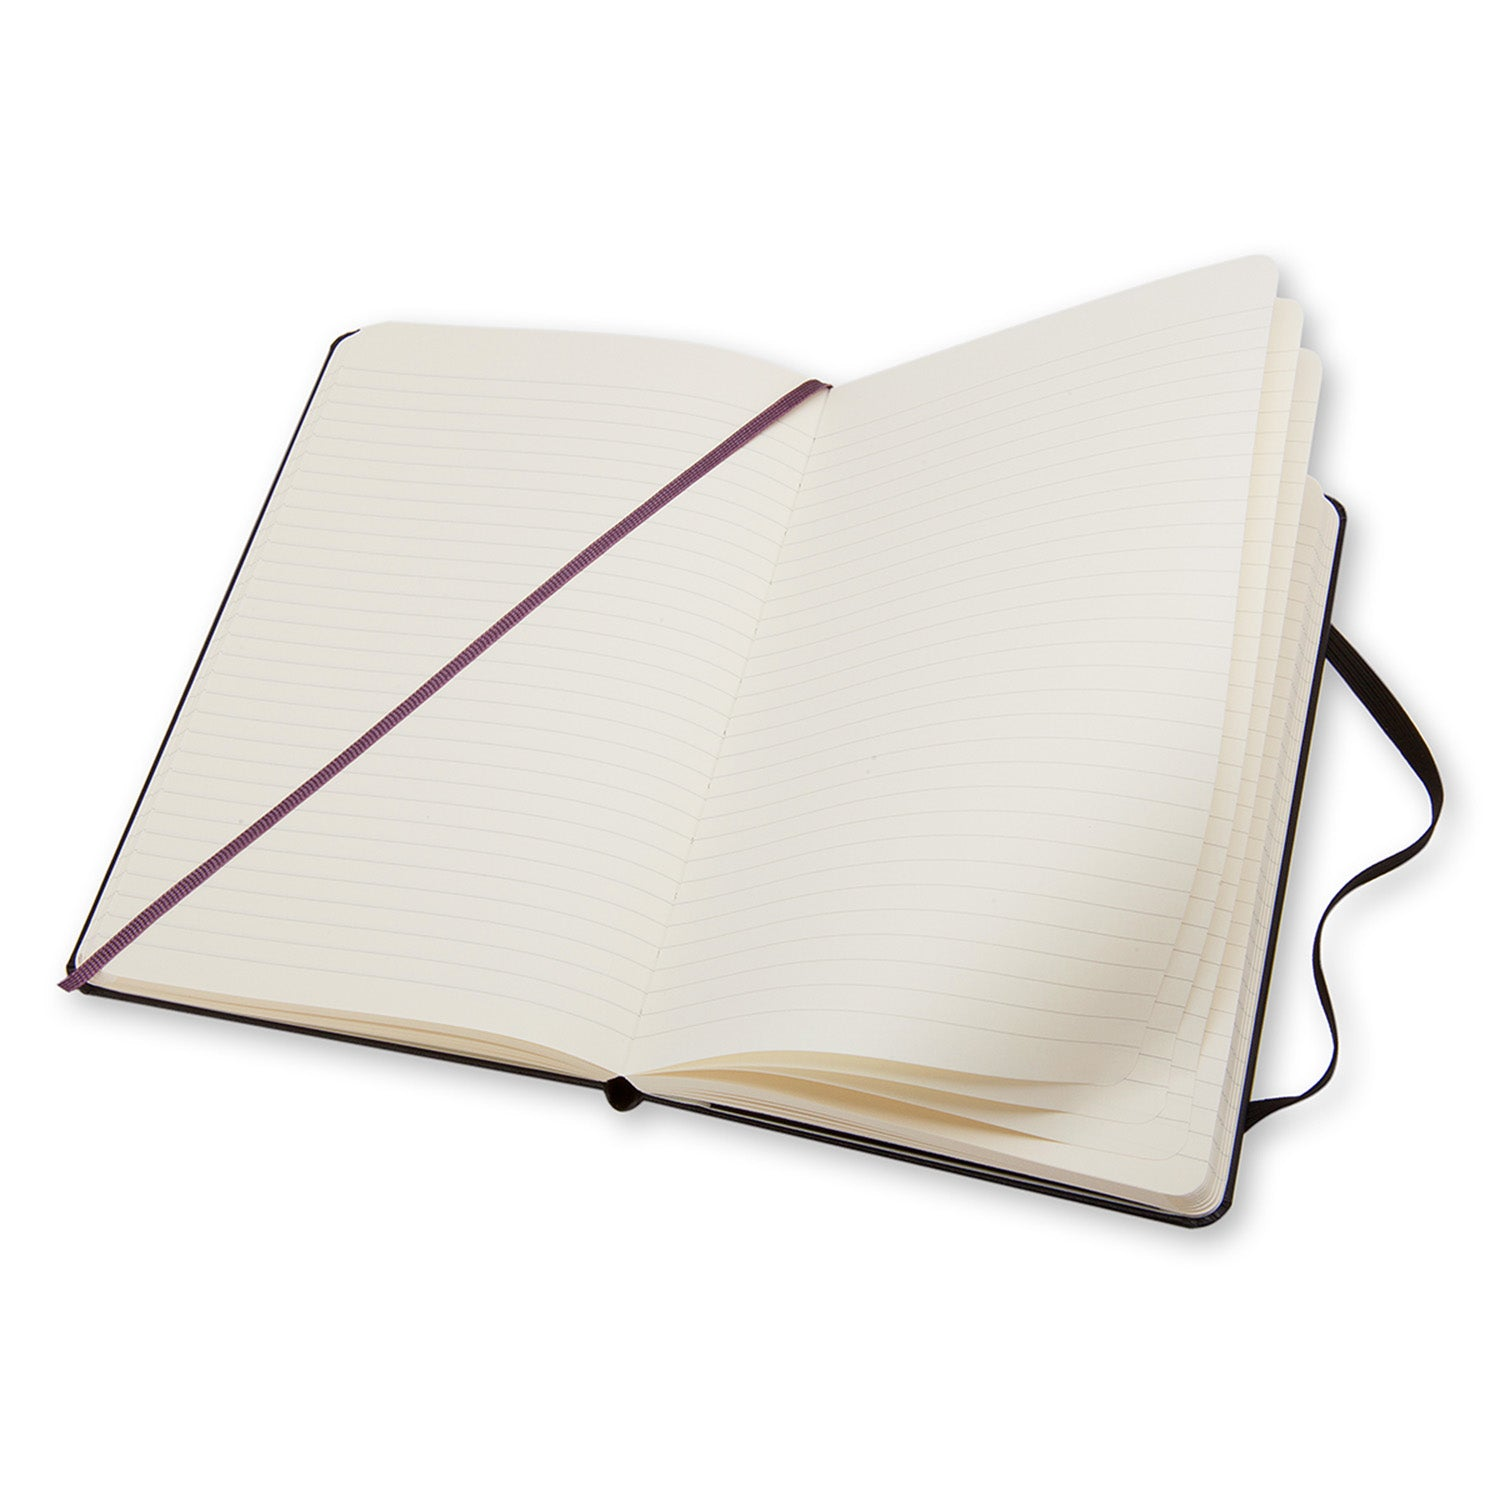 Pocket Hard Cover Notebook